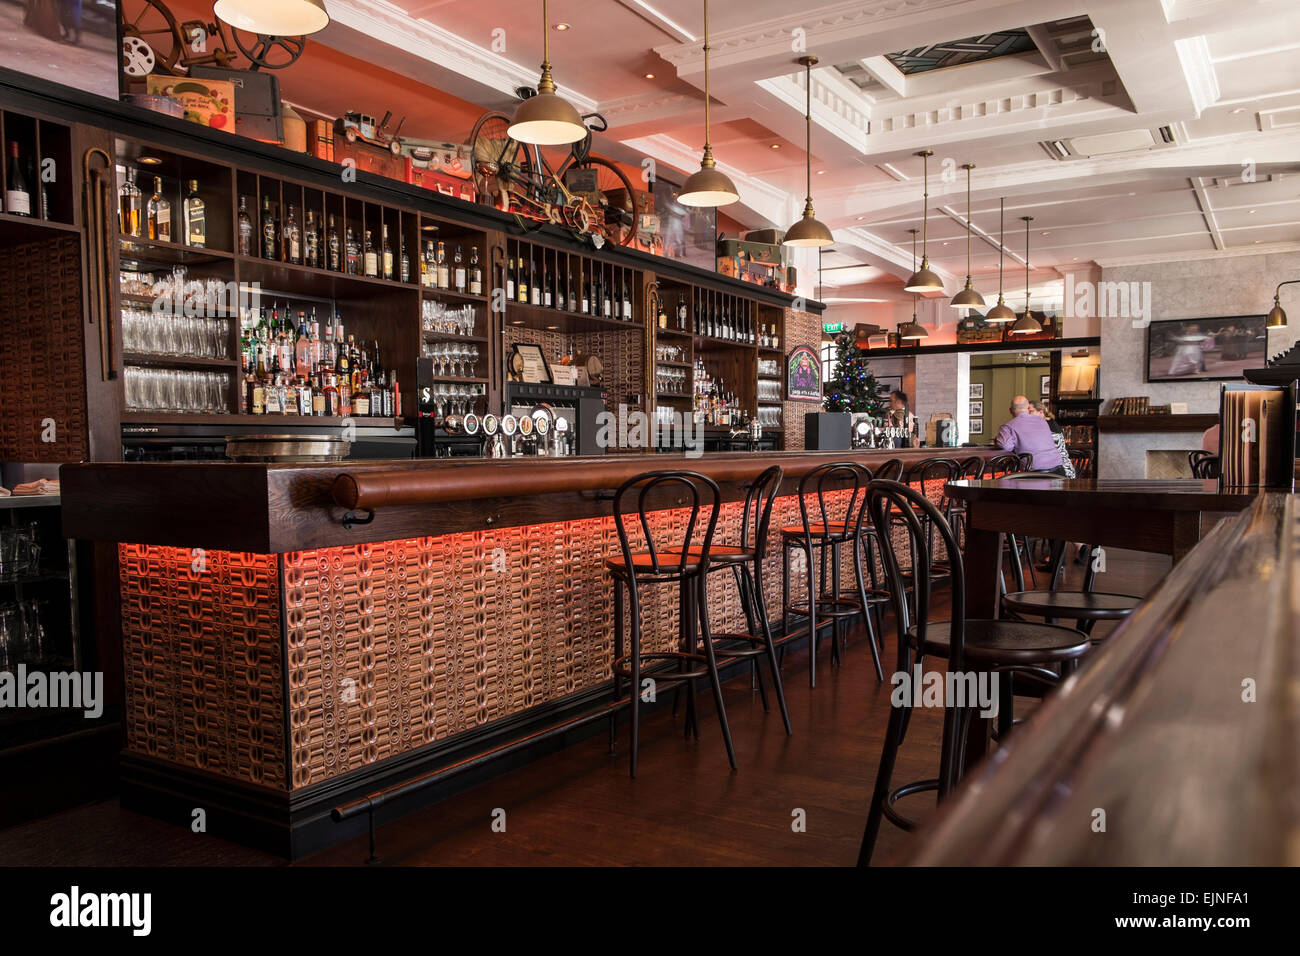 the masonic hotel interior of the bar restaurant area with old stock photo 80378313 alamy. Black Bedroom Furniture Sets. Home Design Ideas